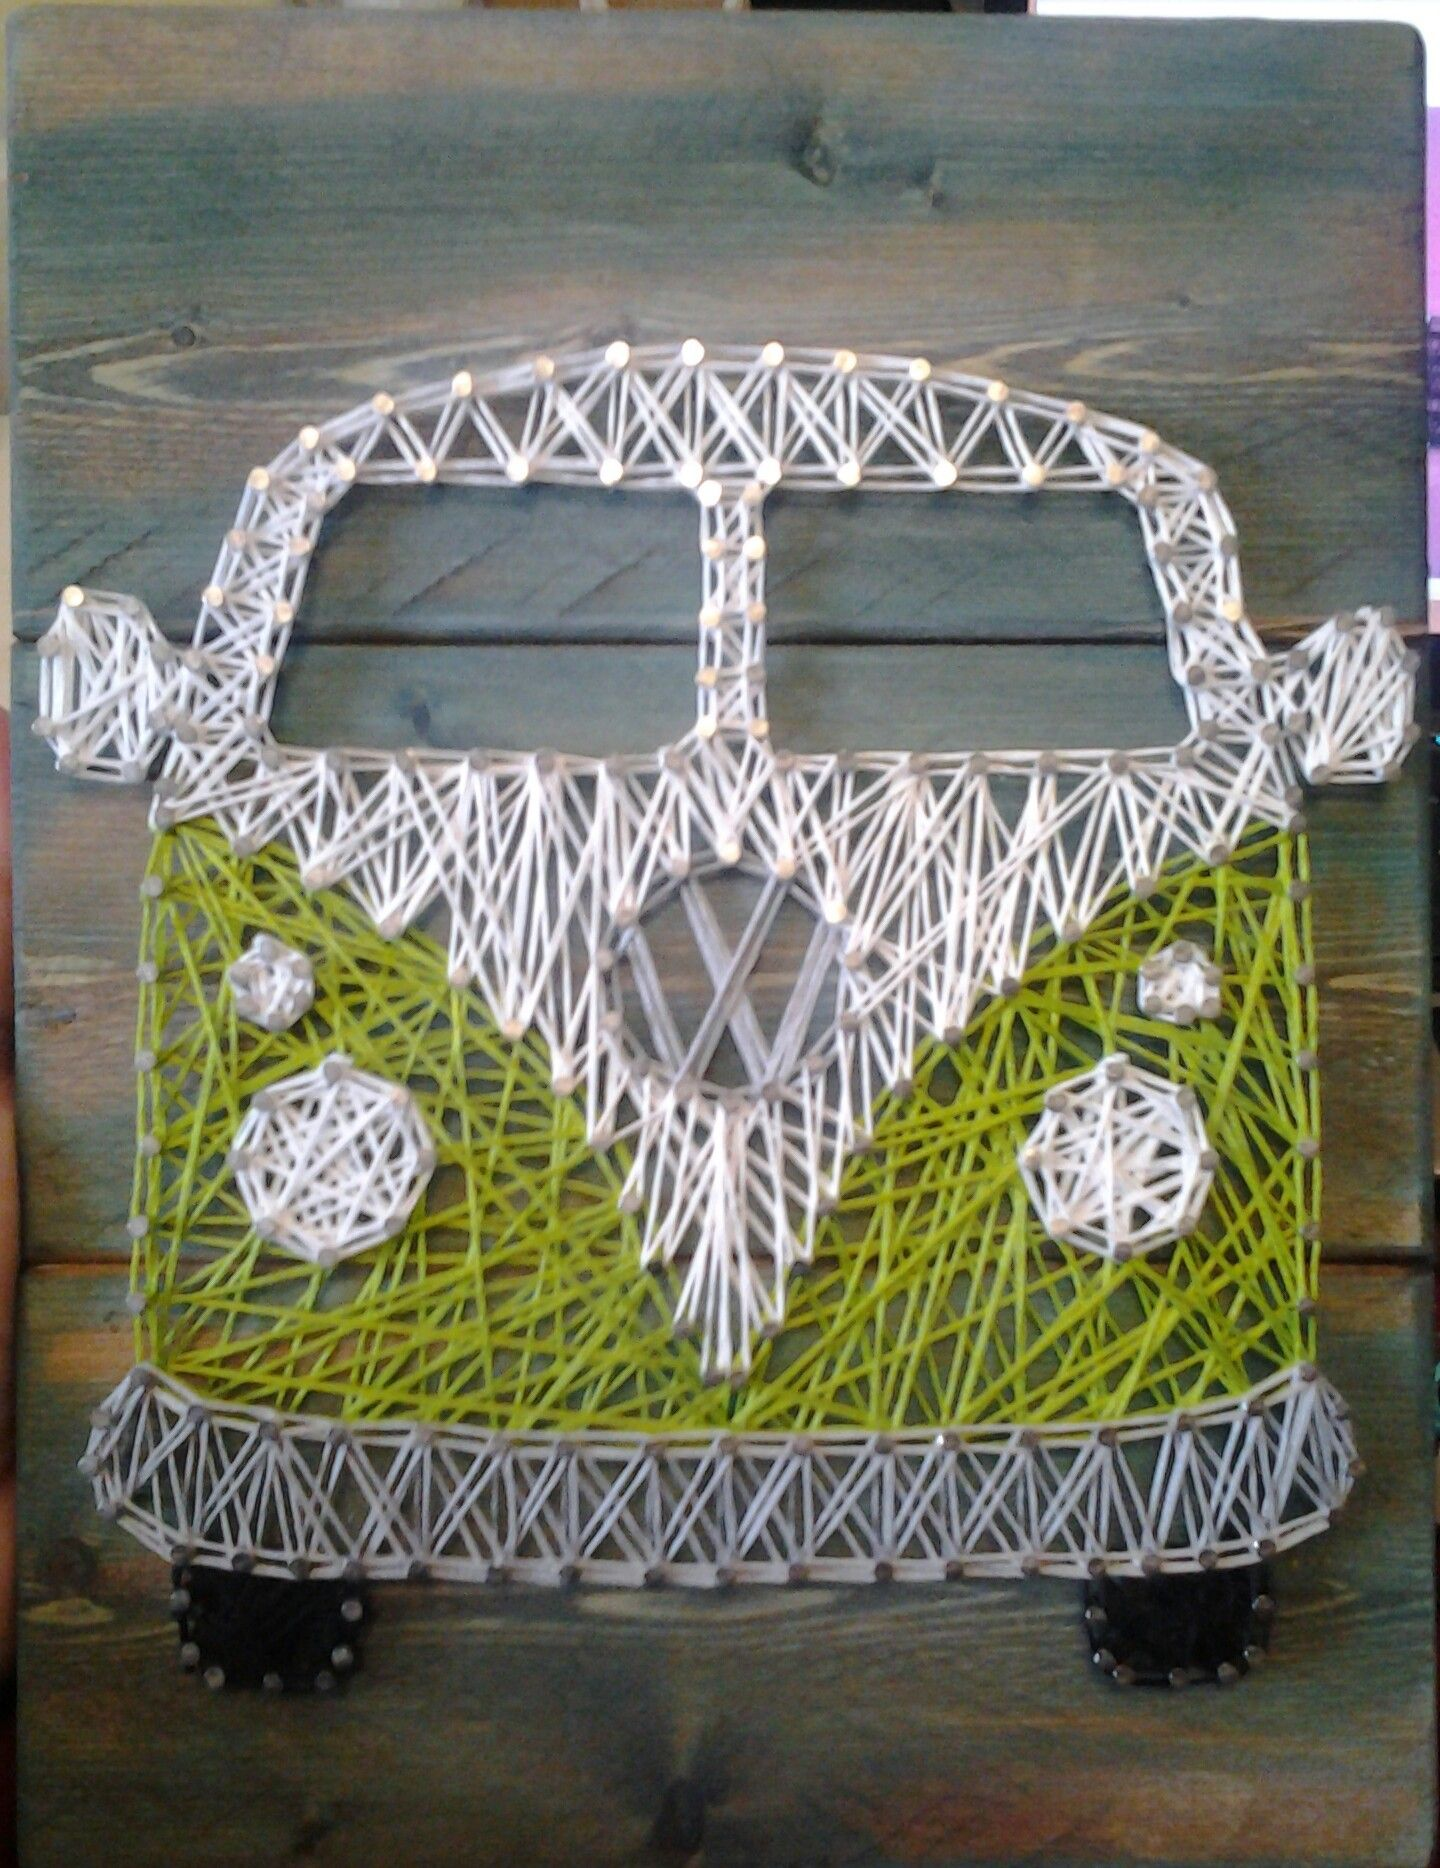 vw bus hippie van string art diy 39 ed pinterest fadenbilder fadenkunst und papa geschenke. Black Bedroom Furniture Sets. Home Design Ideas